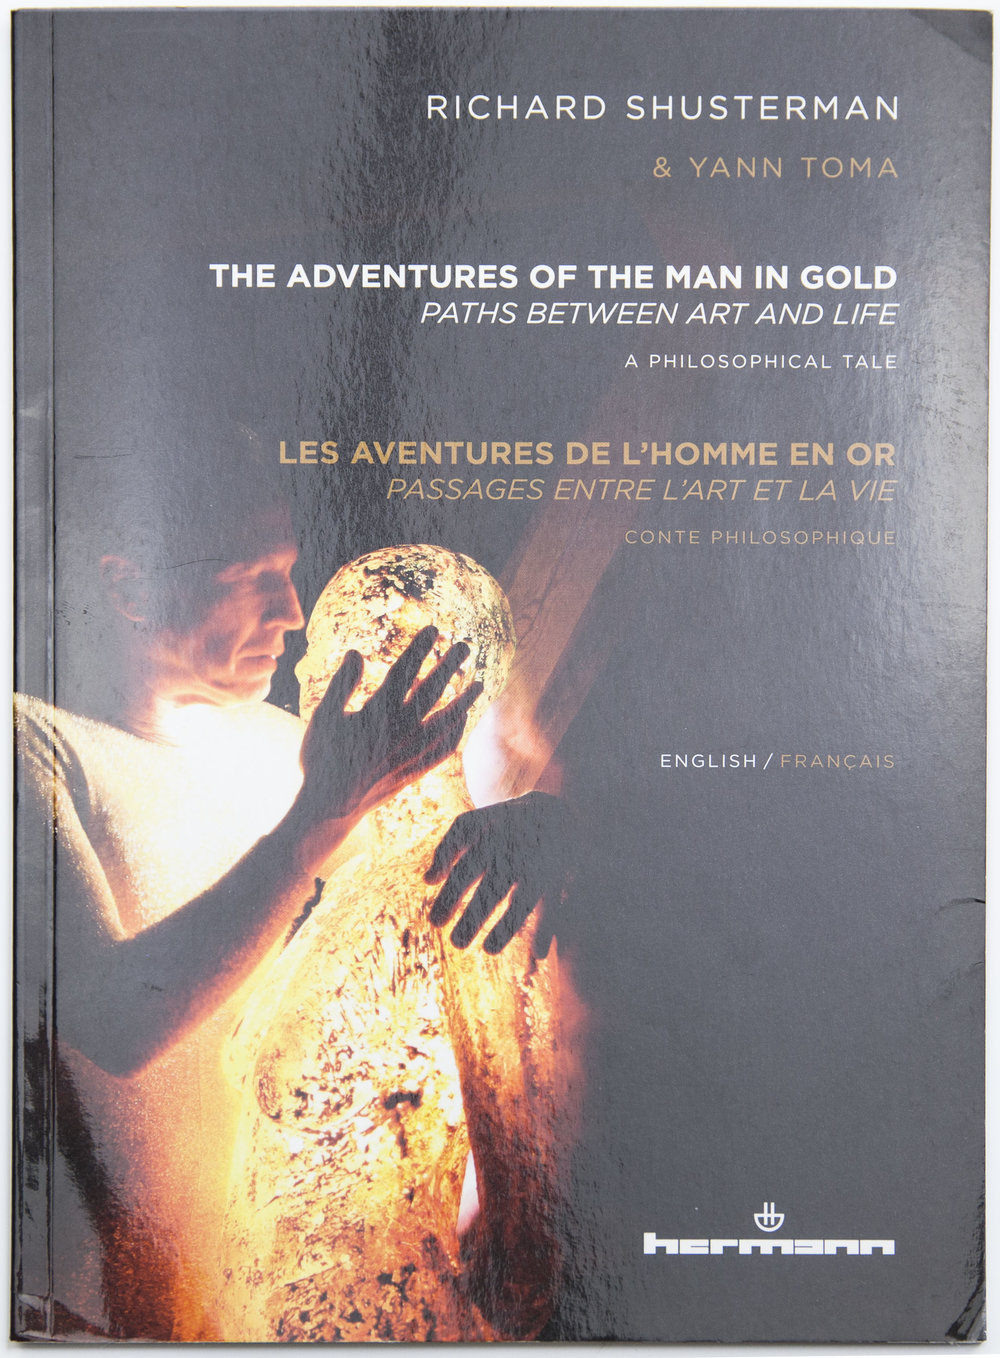 Design for The Adventures of The Man in Gold: Paths Between Art and Life by Richard Shusterman (2017)